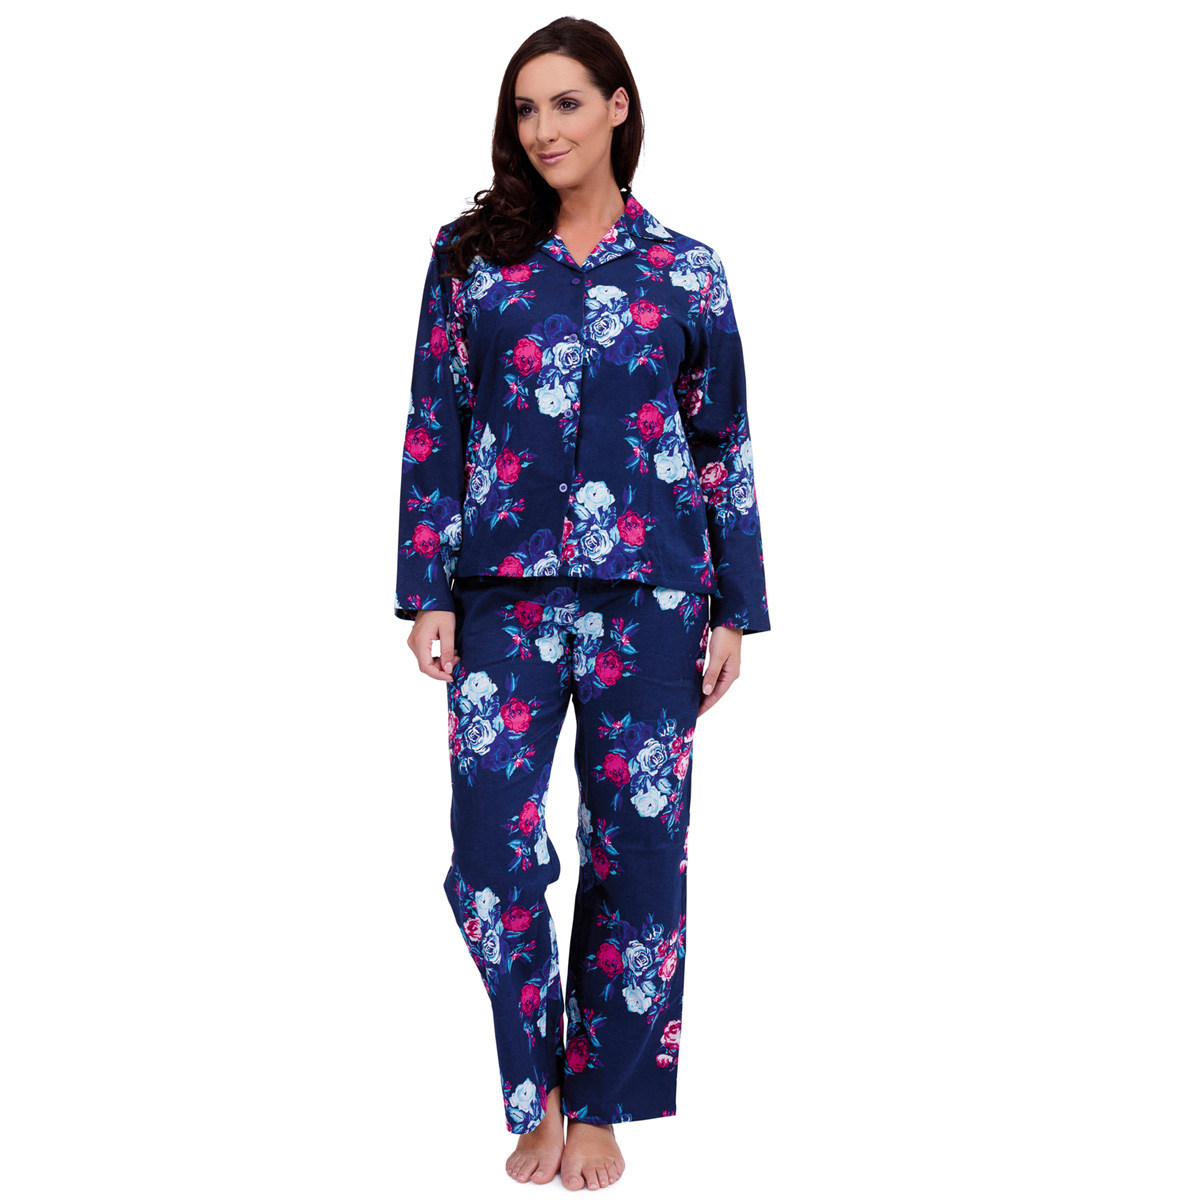 Pajama Sets. We use cookies to better understand how the site is used and give you the best experience. By continuing to use this site, you consent to our Cookie Policy. The Cat's Pajamas Women's Brooklawn Flannel Pajama Set. $; Only 8 left in stock. Add to cart. Drag and drop me to the cart. The Cat's Pajamas Women's Barcelona.